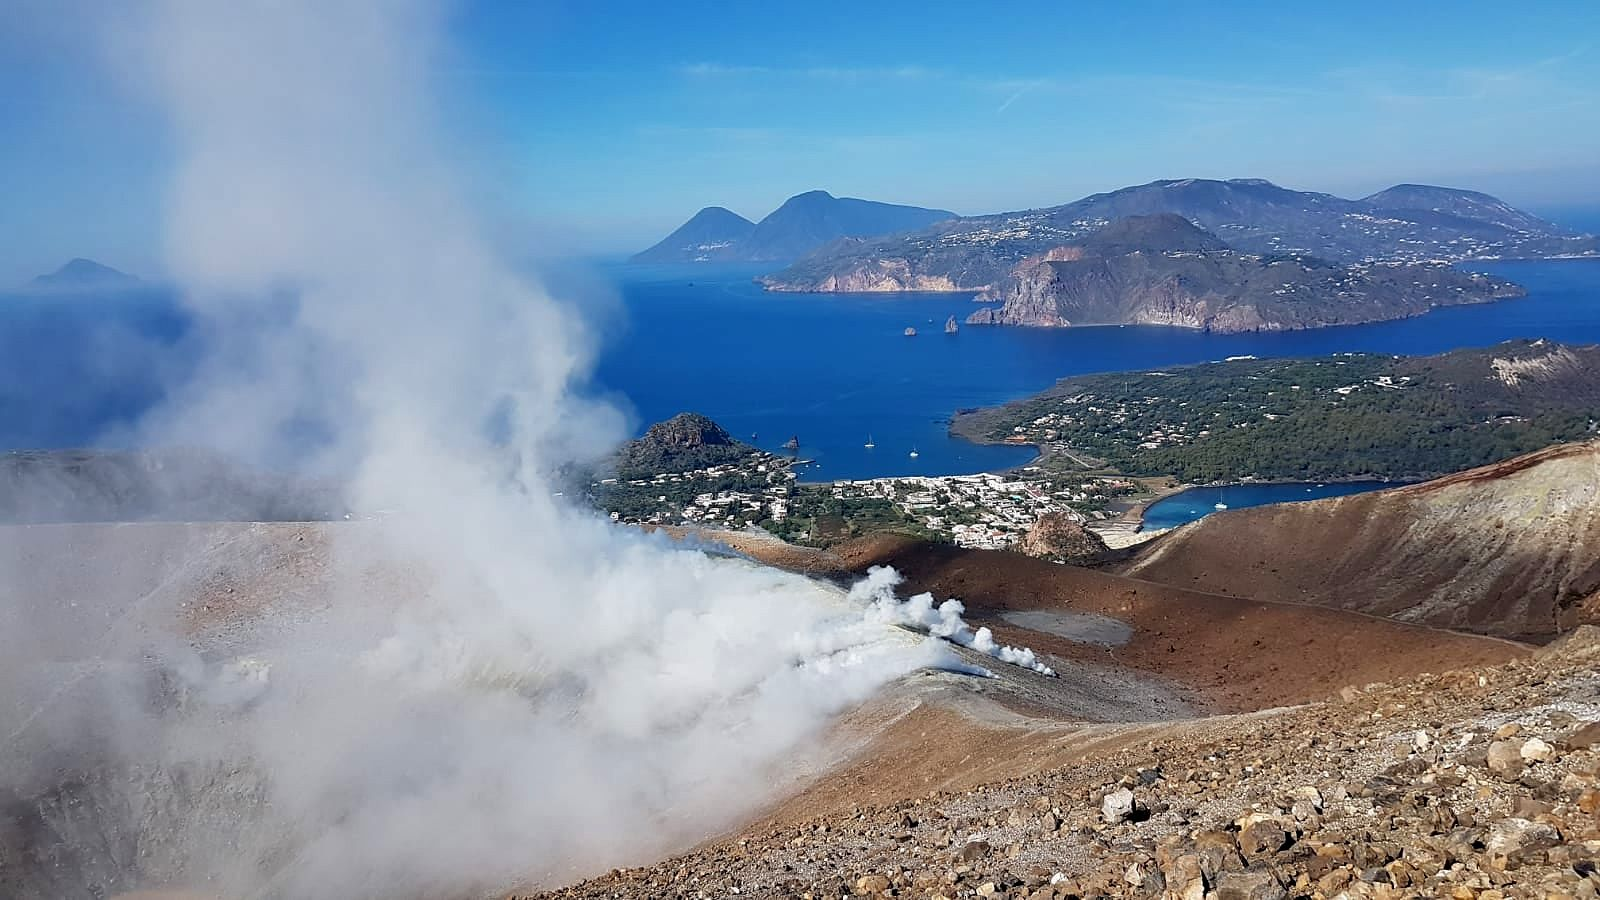 Vulcano - fumaroles on the edge of the crater - photo INGV / 22.10.2021 - one click to enlarge